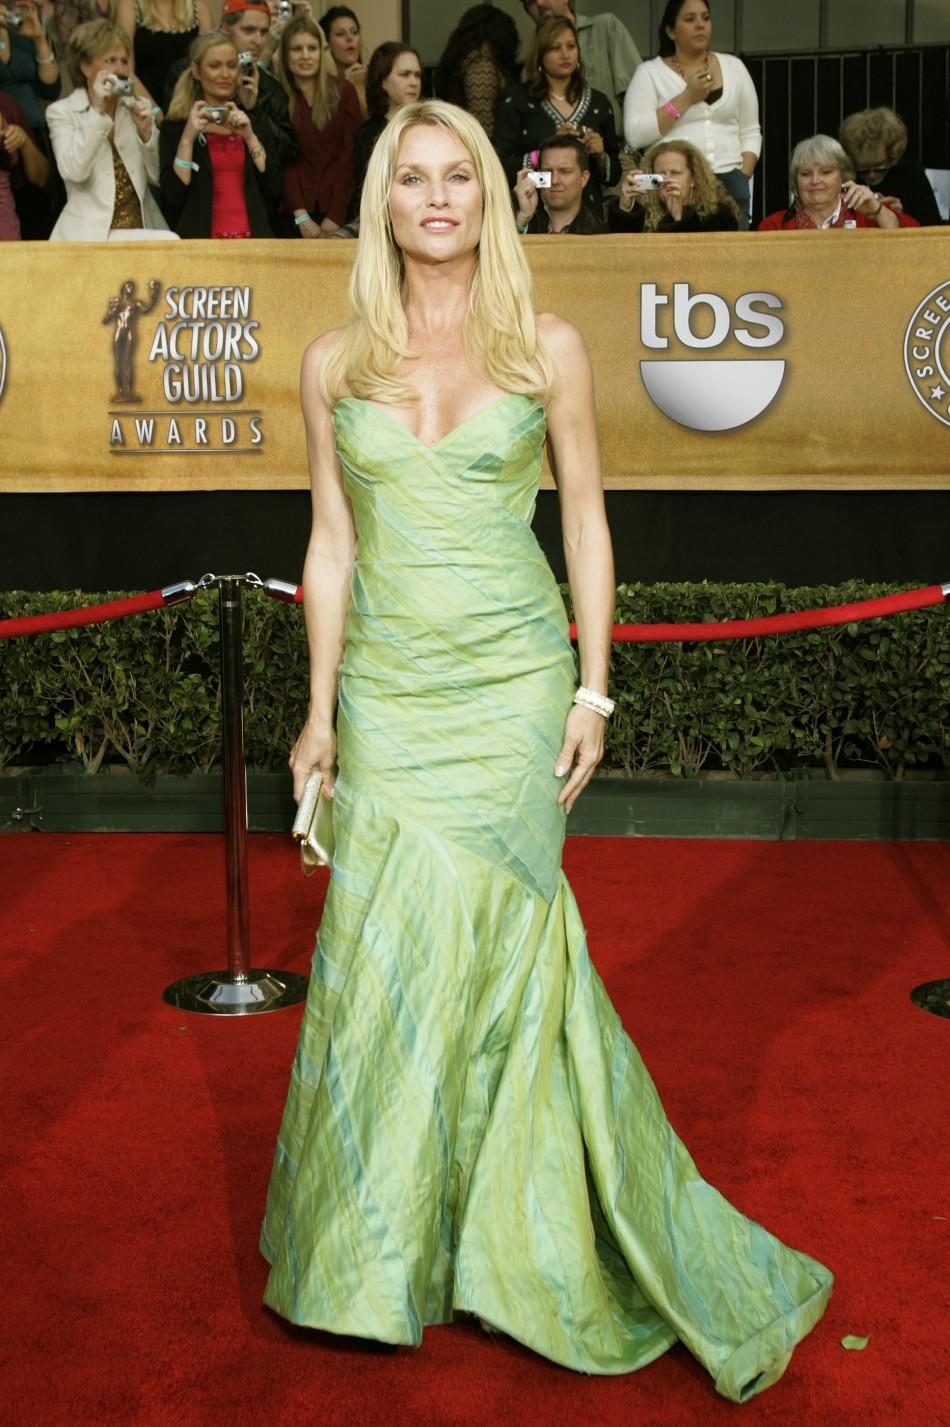 Actress Nicollette Sheridan poses at 12th annual Screen Actors Guild Awards in Los Angeles